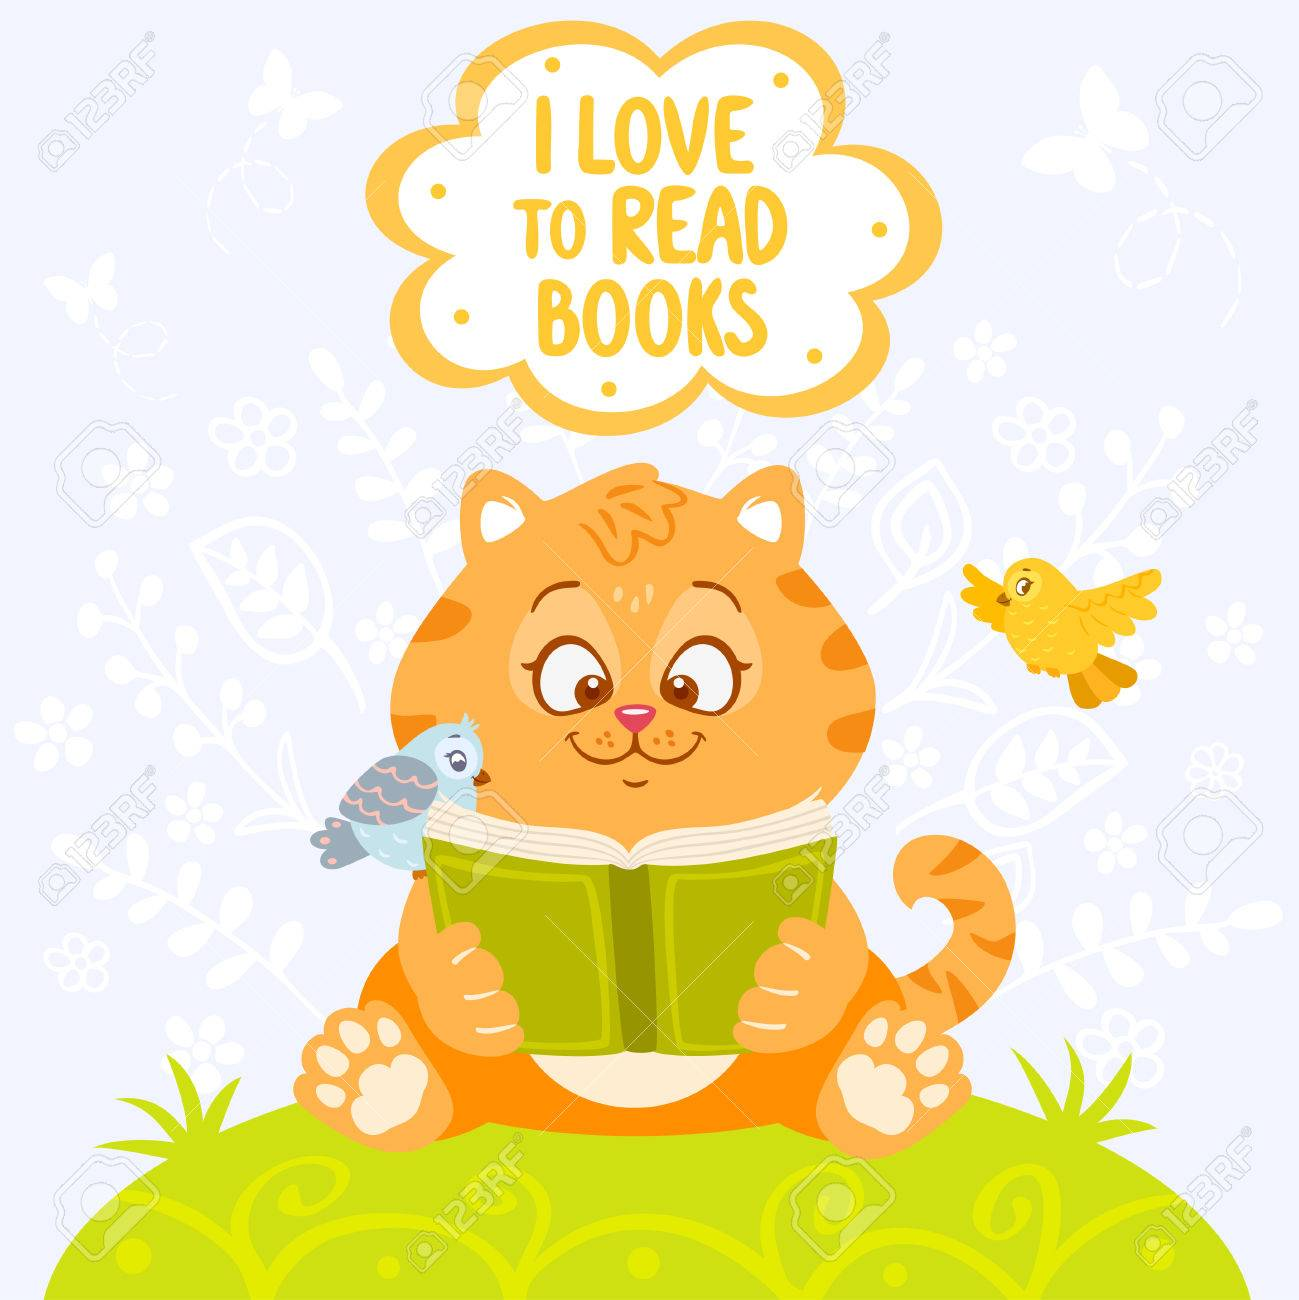 Image result for cat reading a book cartoon